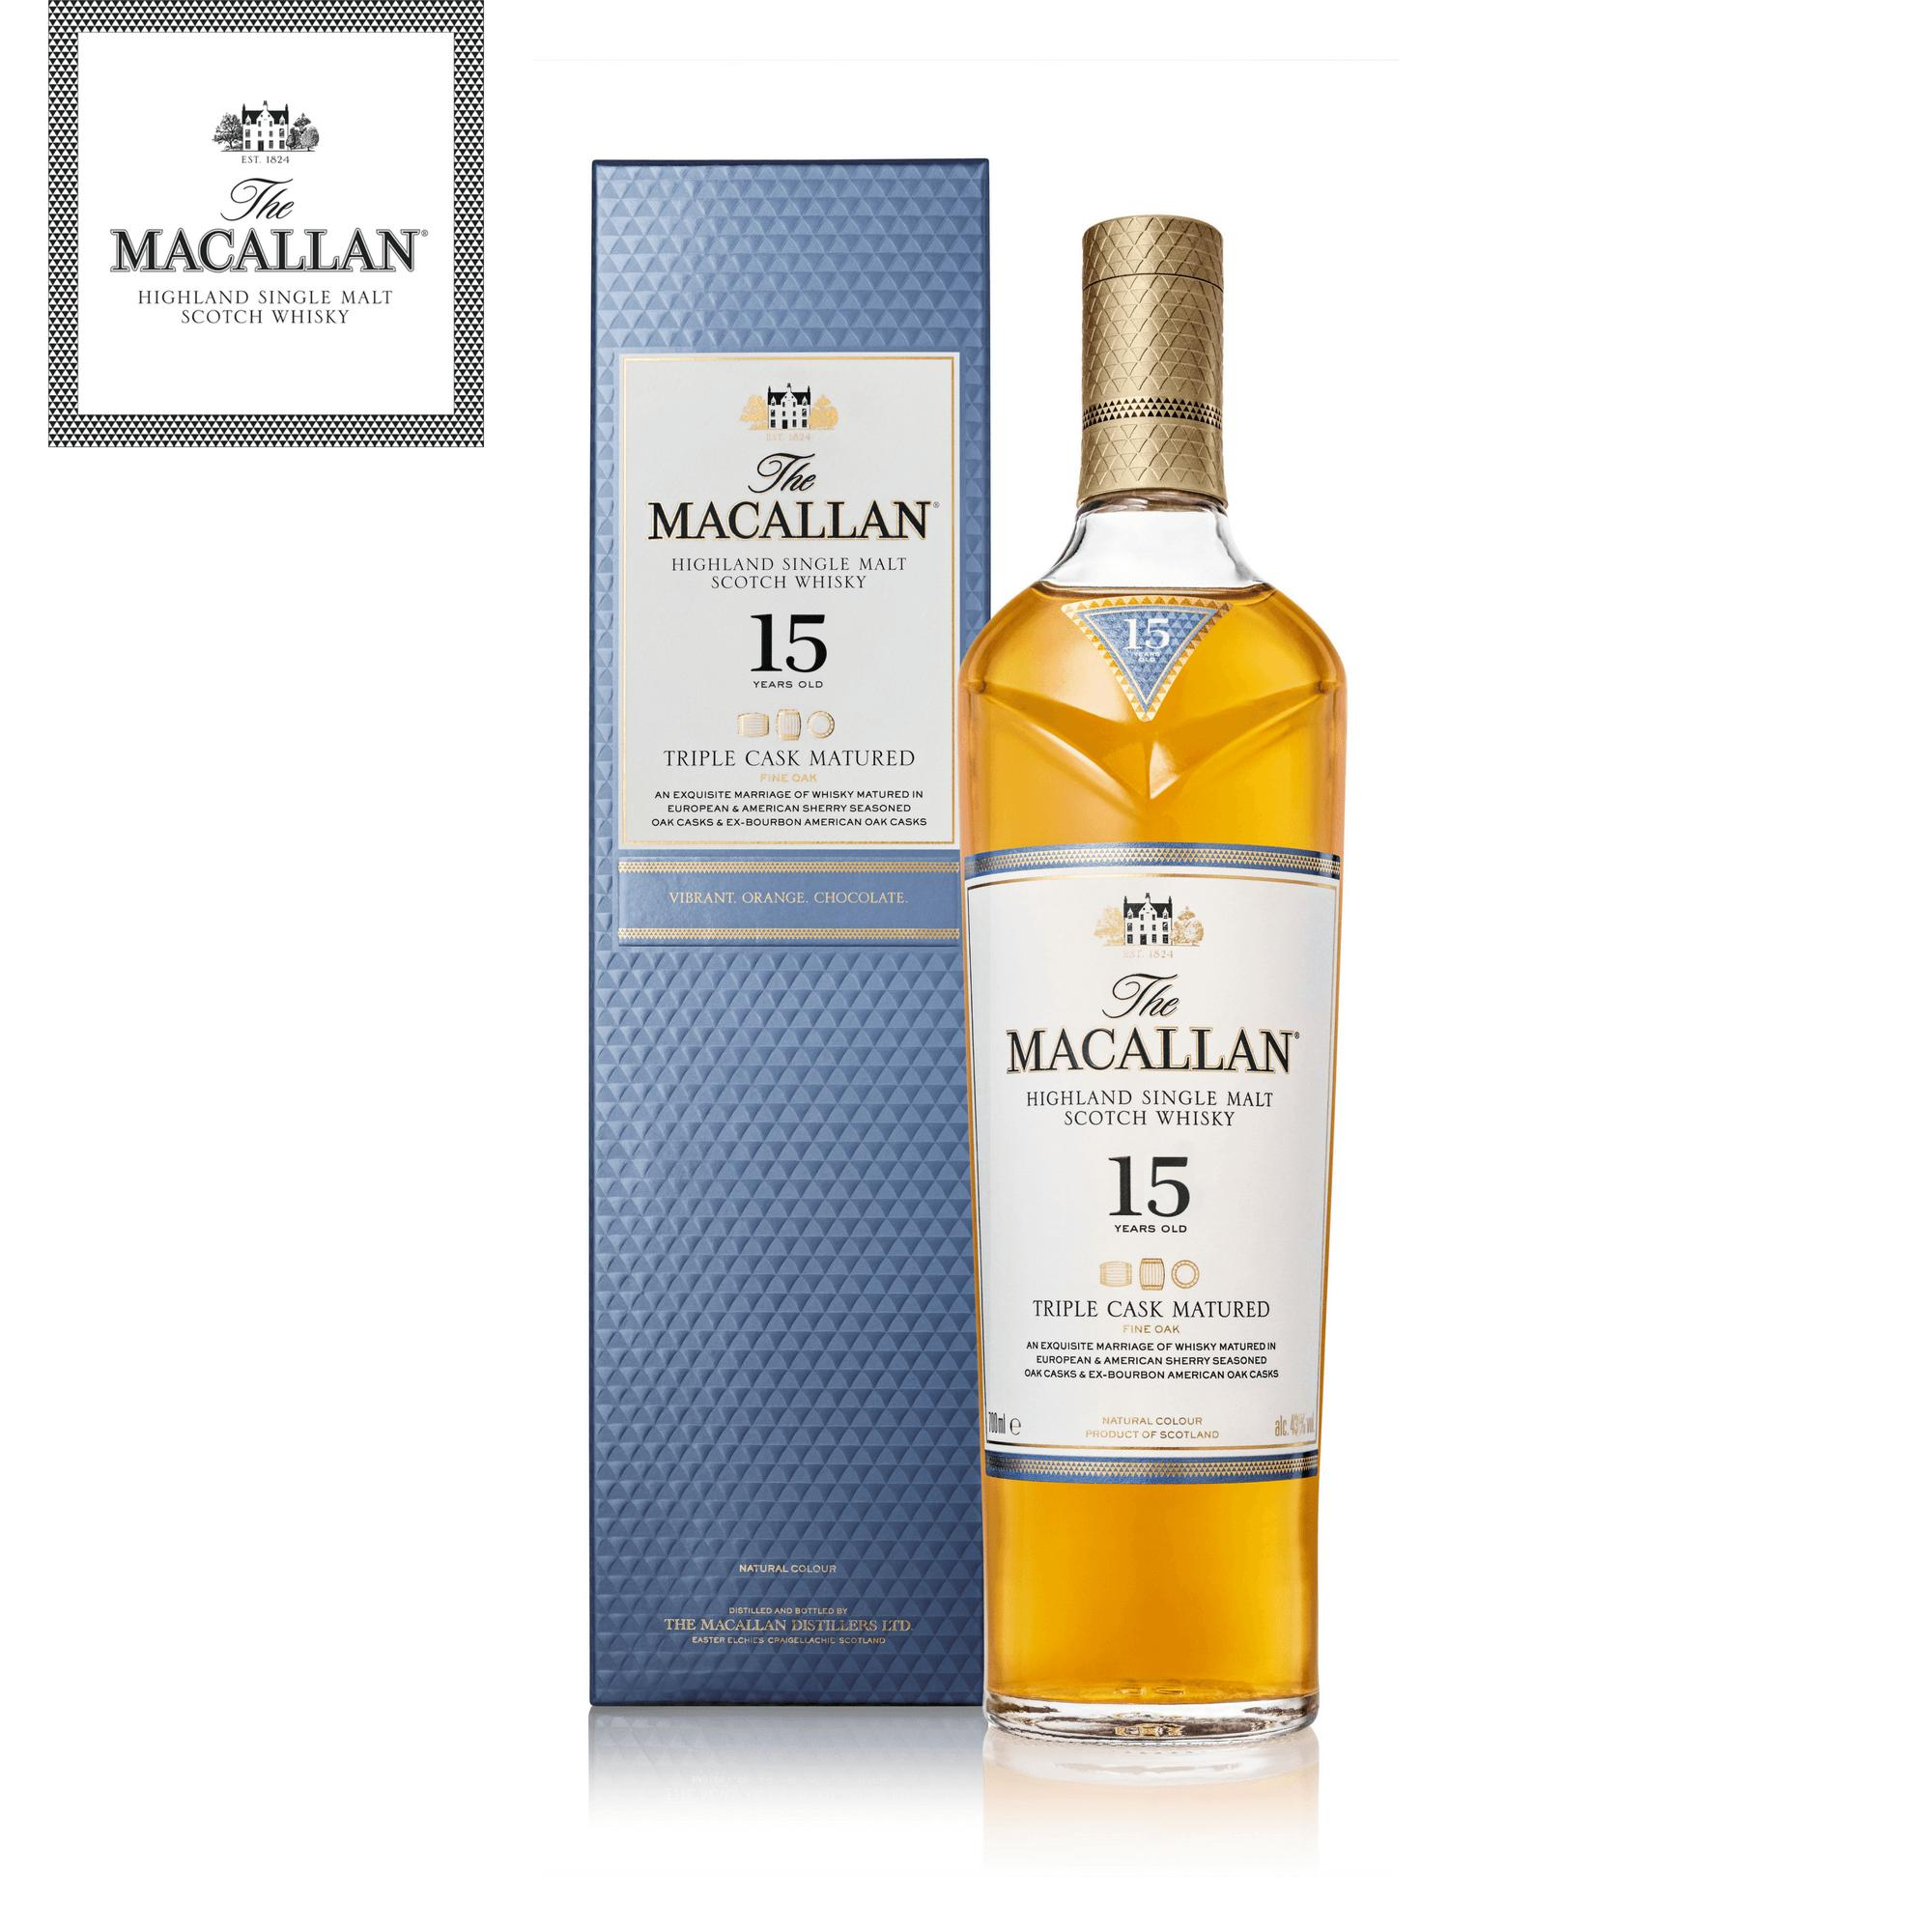 The Macallan Triple Cask Matured 15 Years Old By The Macallan.